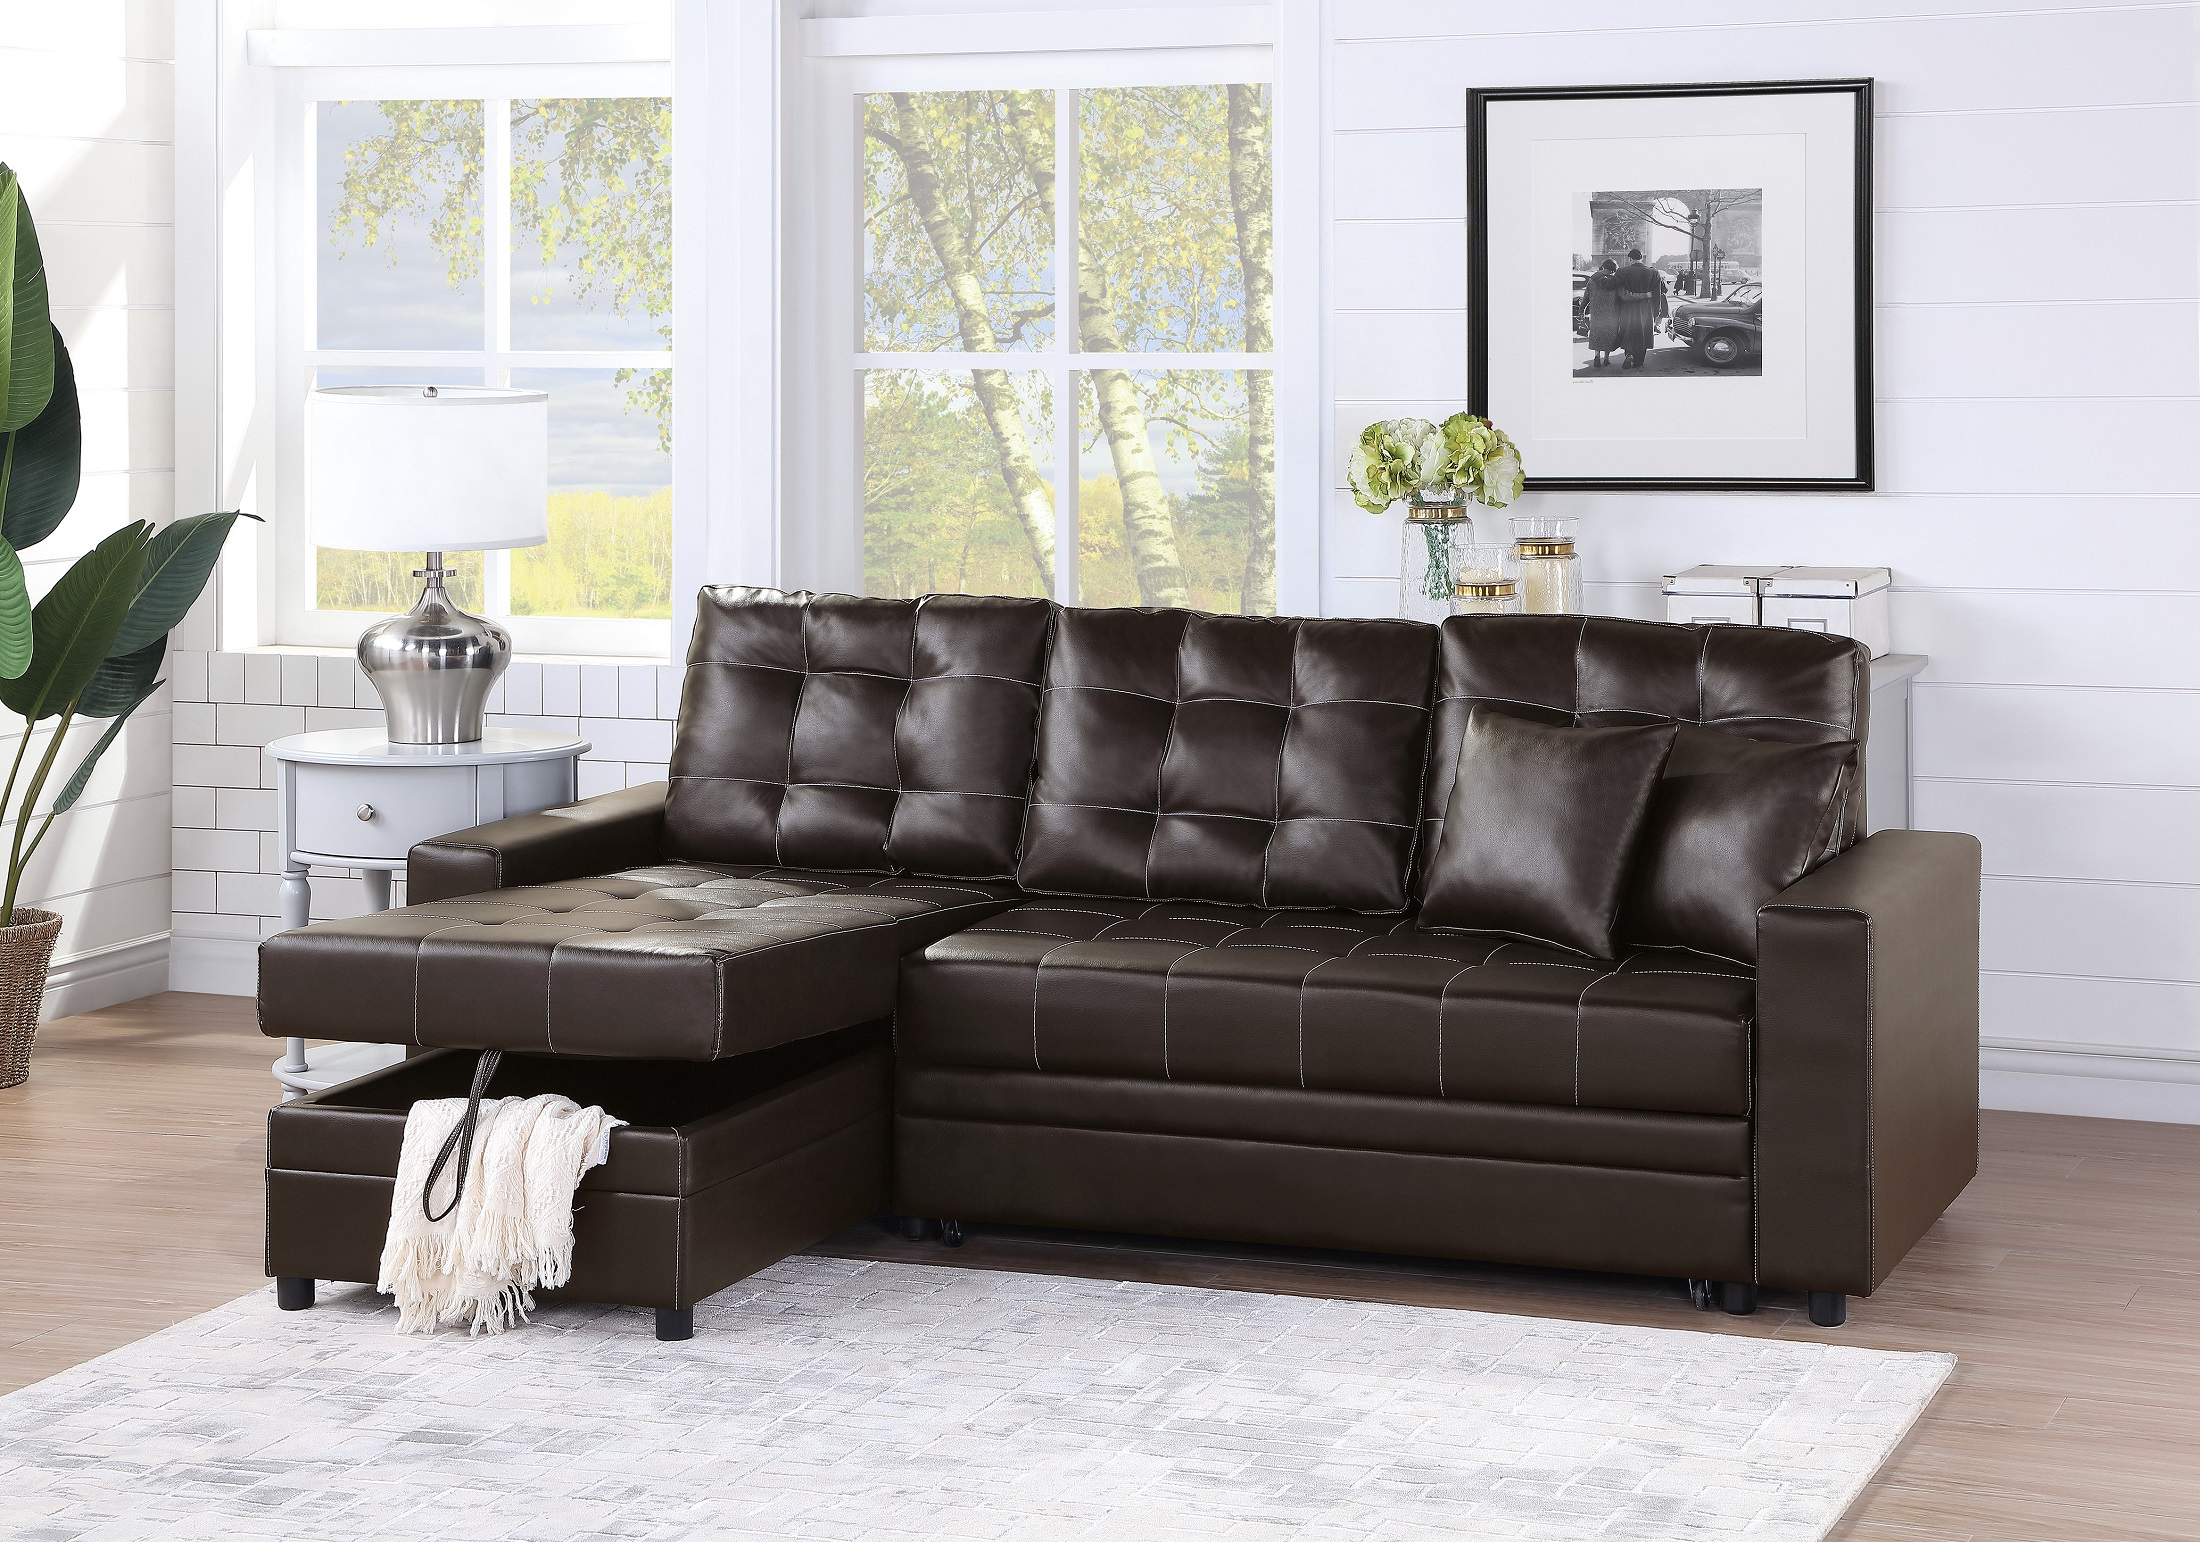 4Pc Crowningshield Contemporary Chaise Sectional Sofas Pertaining To Most Recent Convertible Sectional Sofa Set Living Room Furniture 2Pc (View 2 of 25)